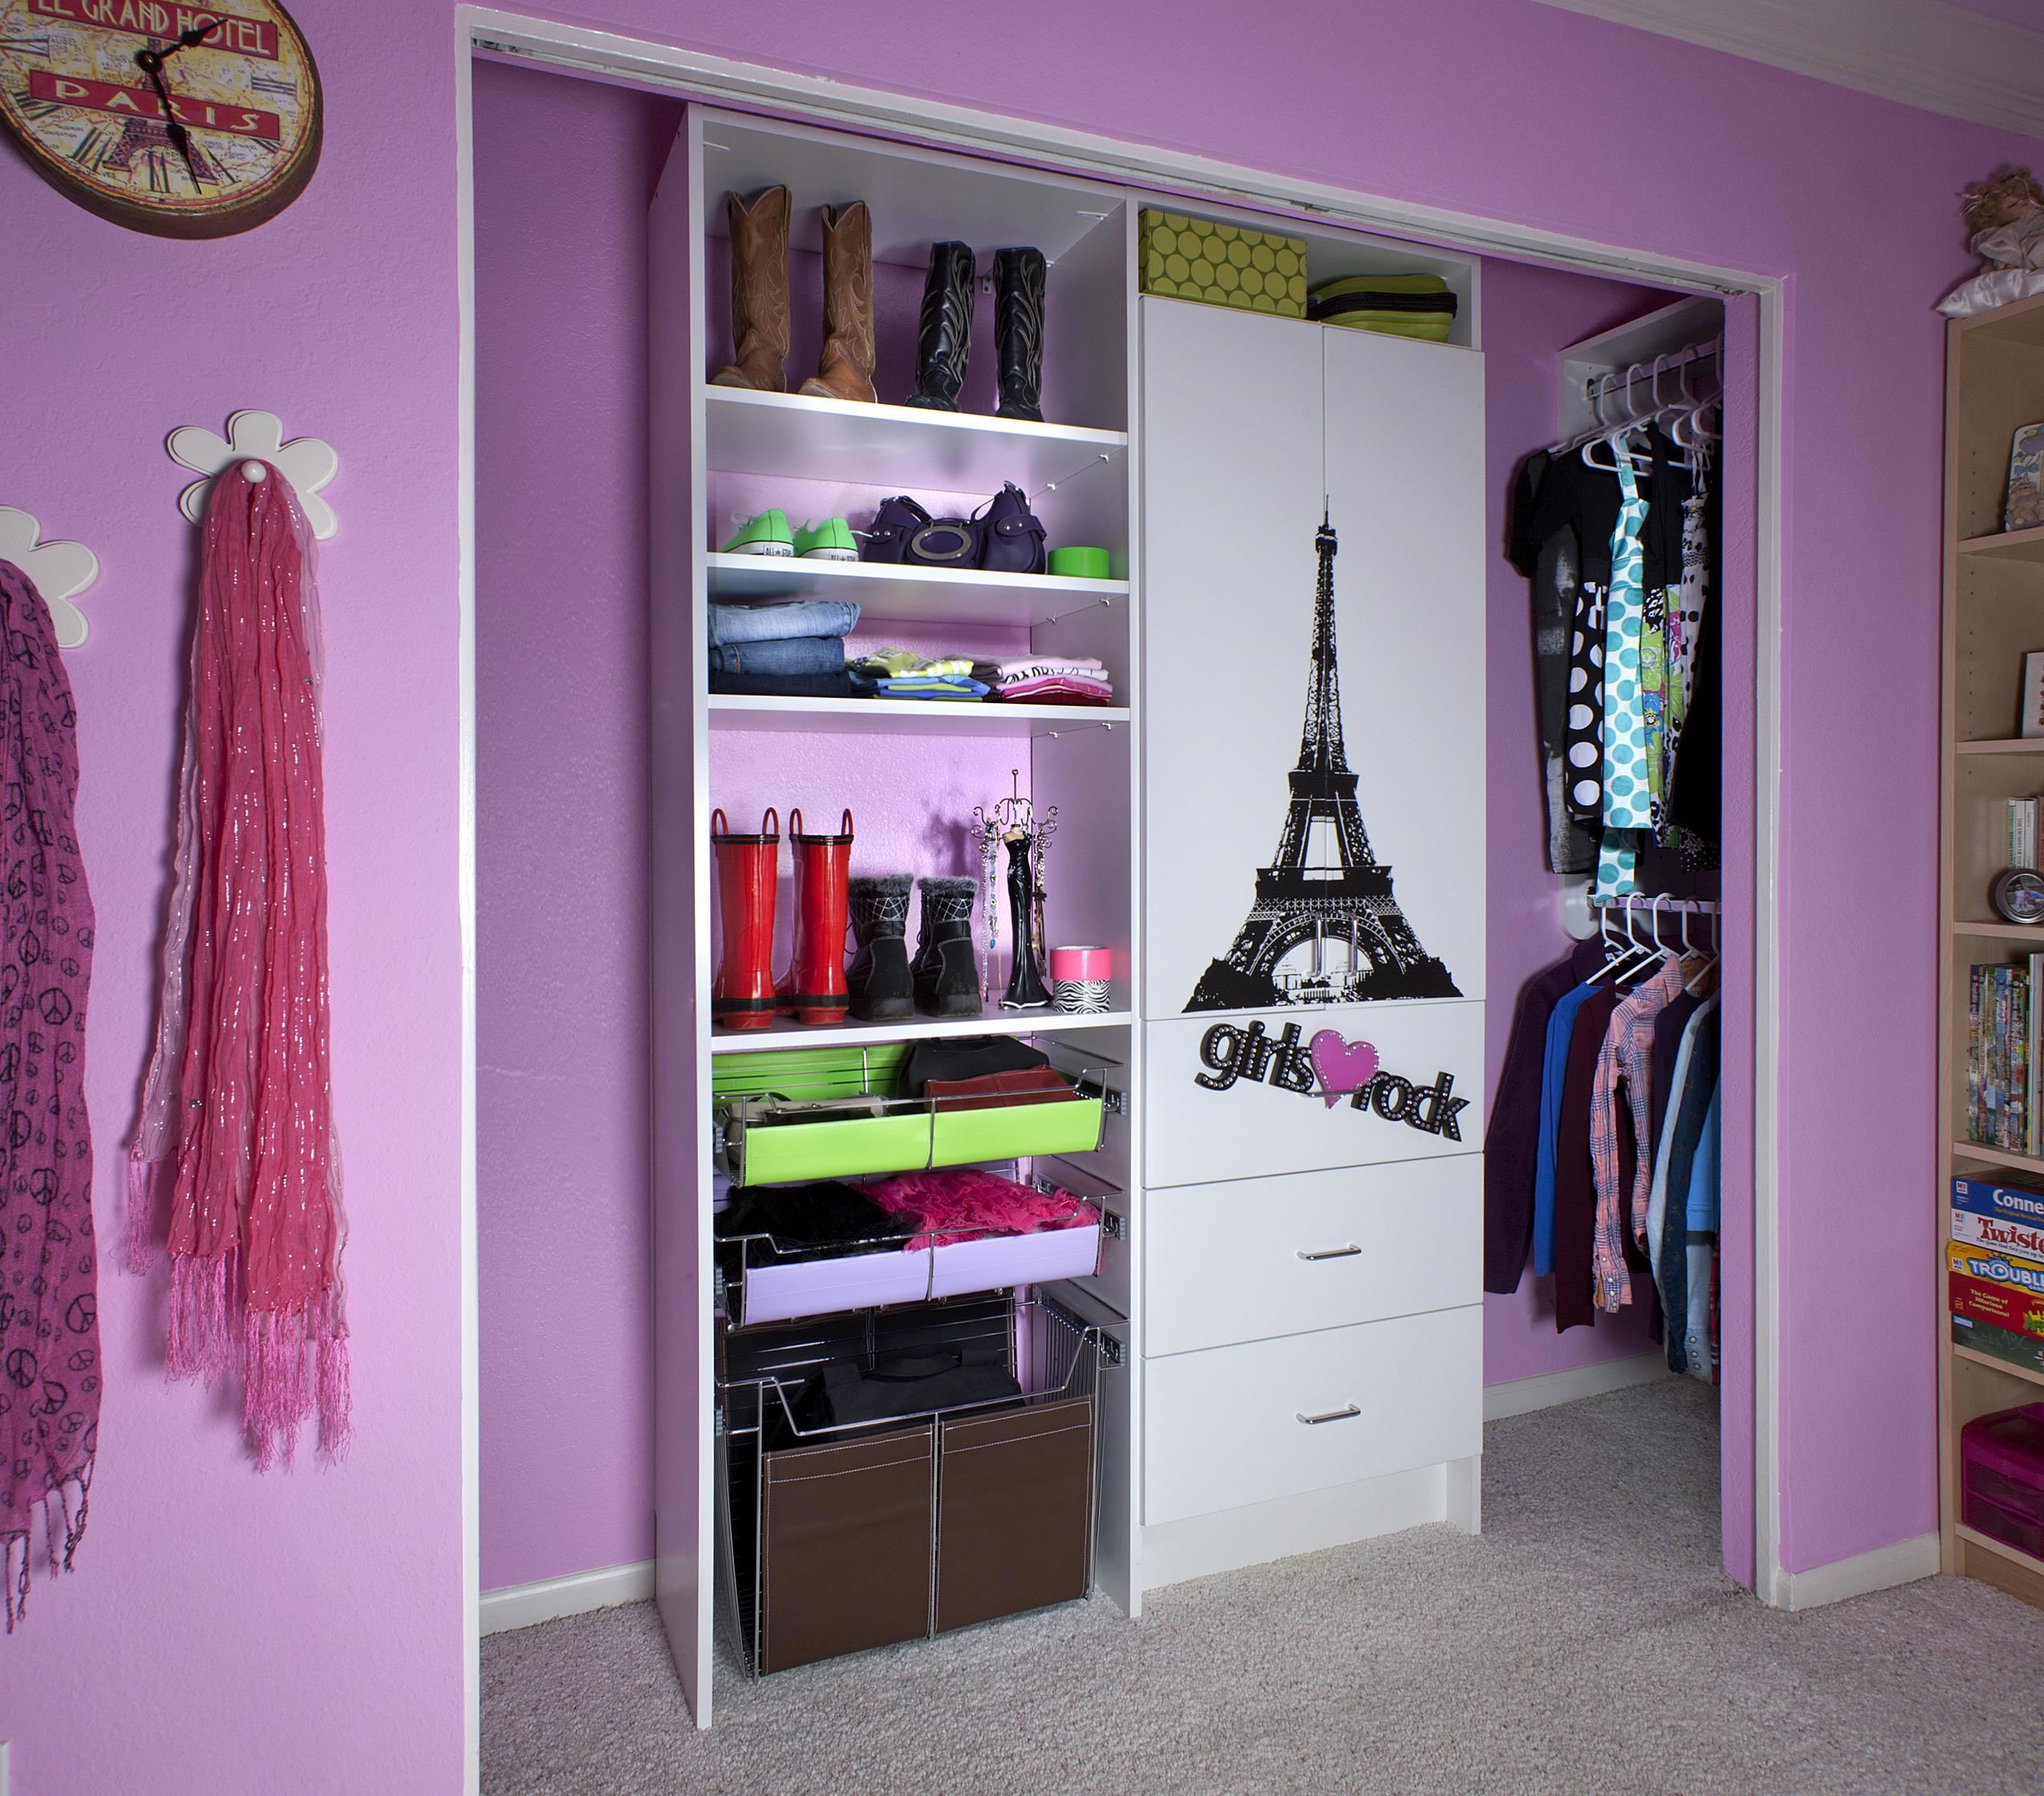 Cabinet Design For Clothes For Girls Create A New Look For Your Room With These Closet Door Ideas